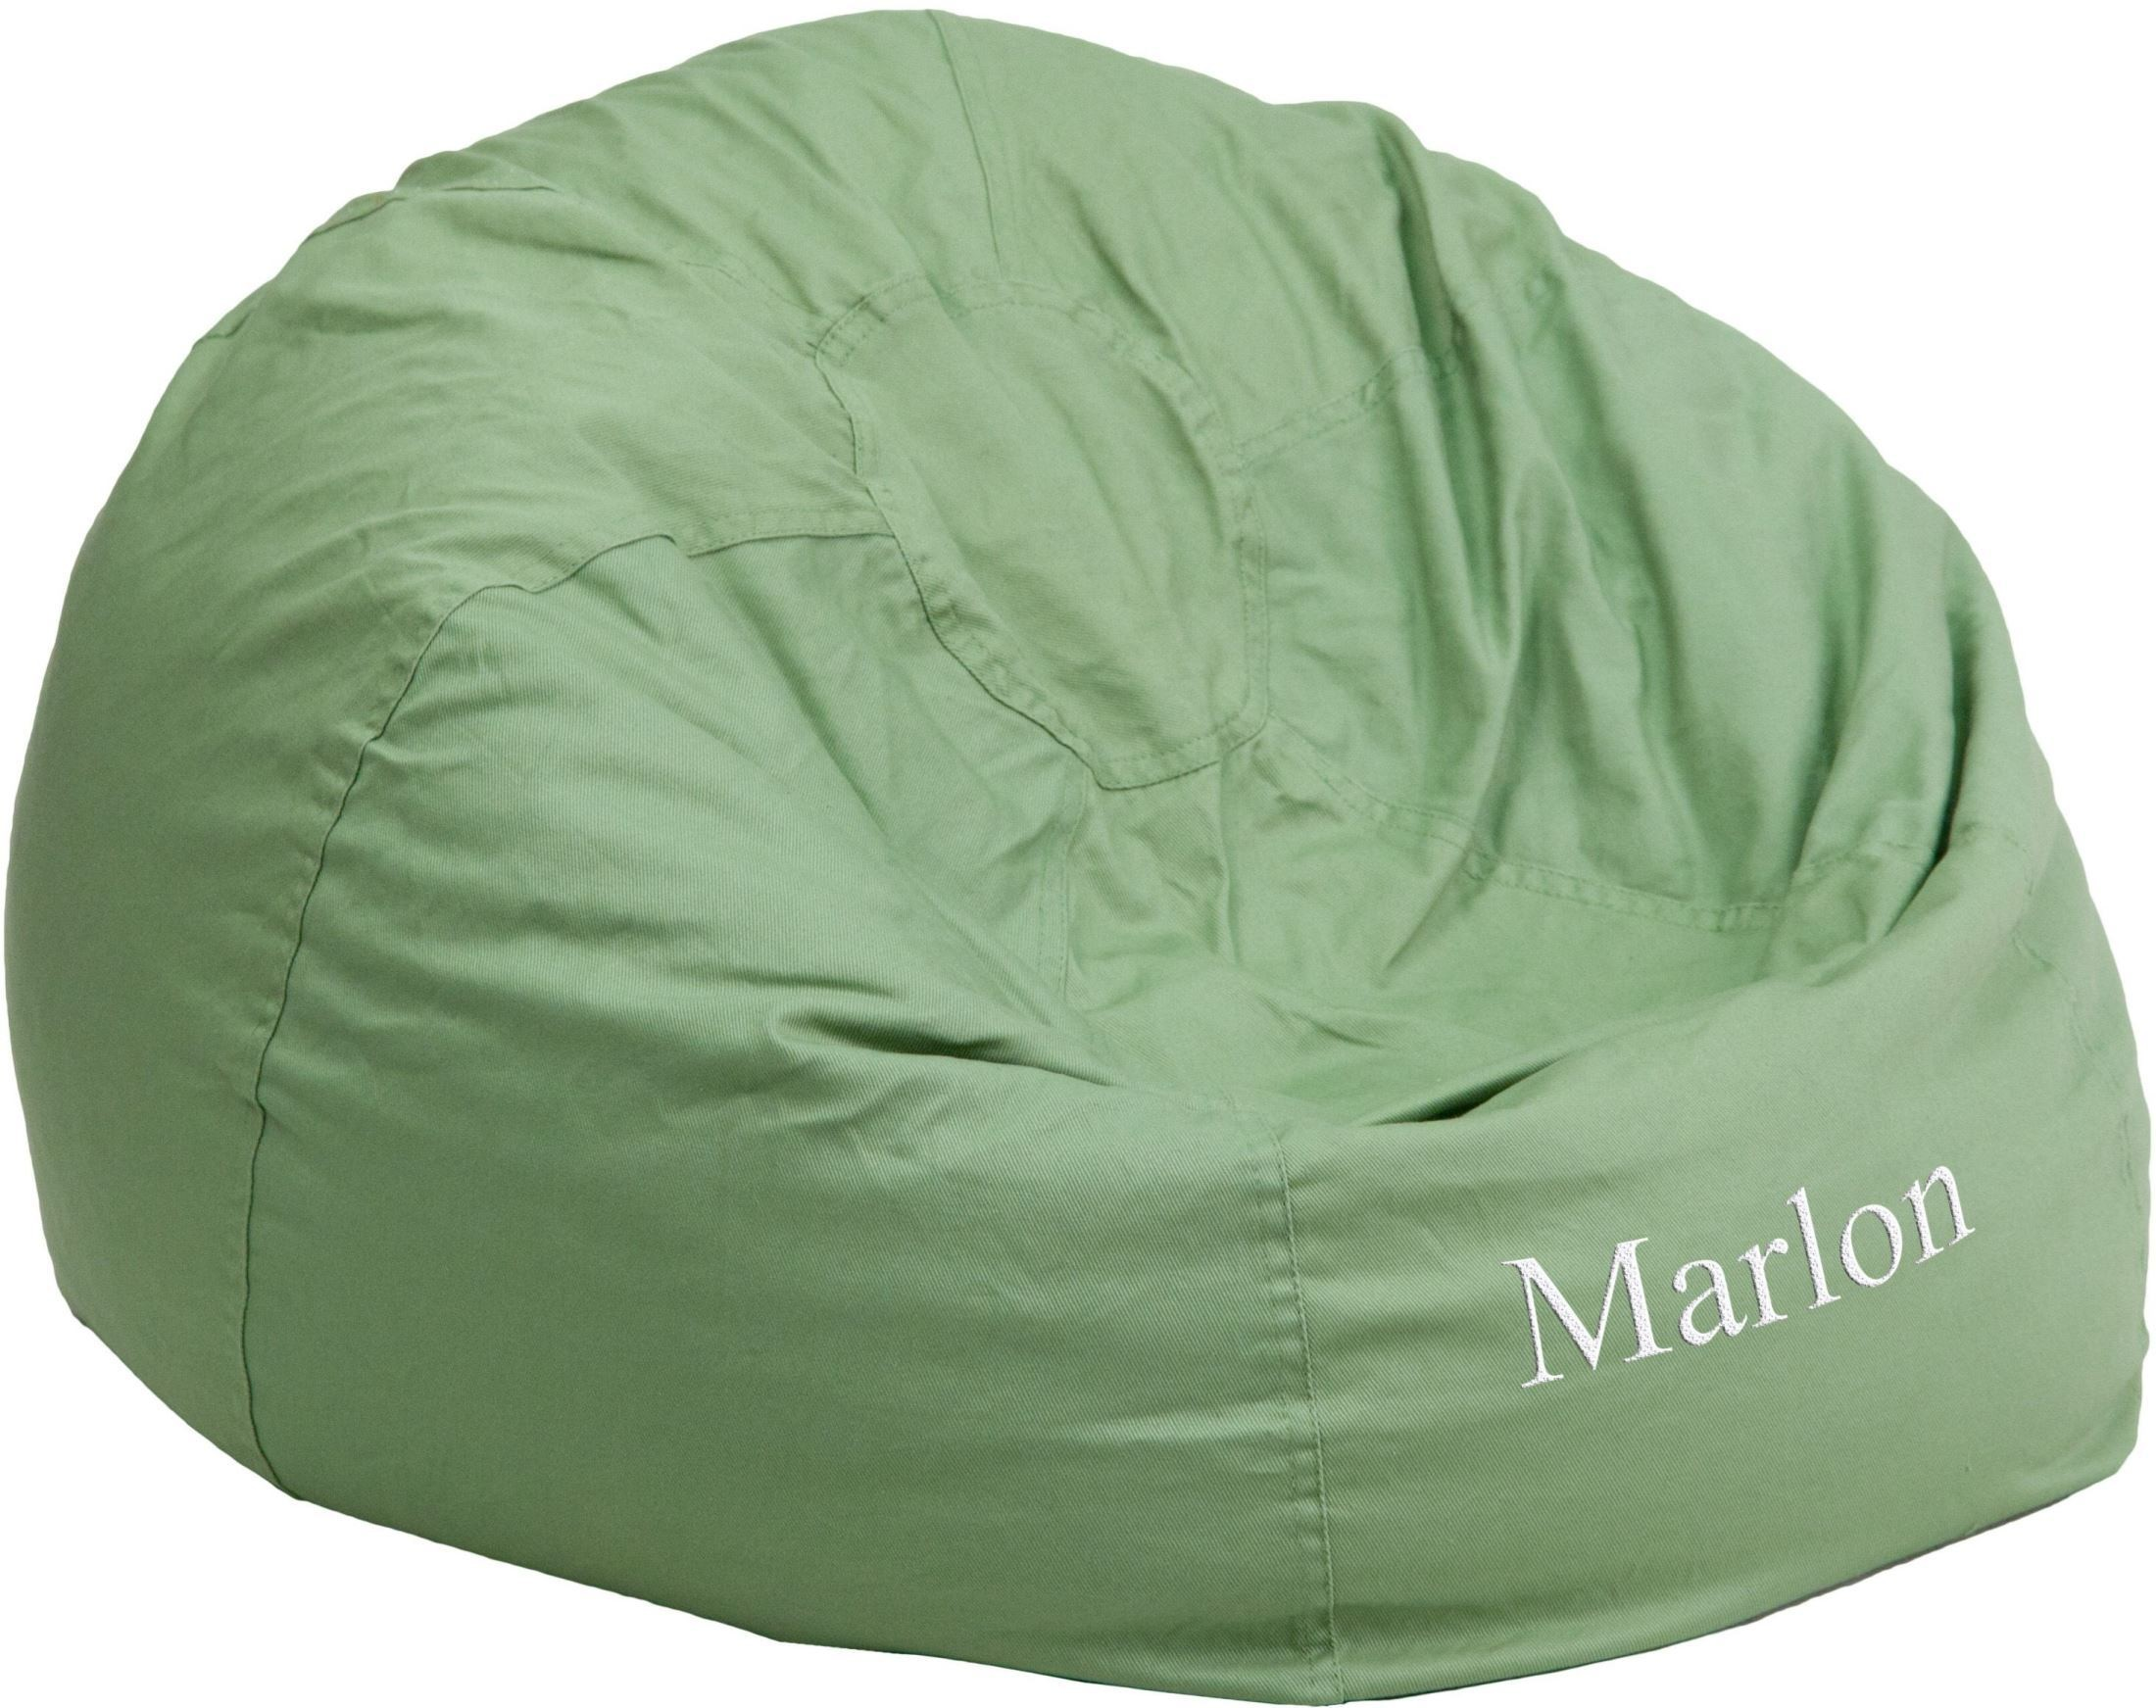 green bean bag chair kmart beach chairs personalized oversized solid with